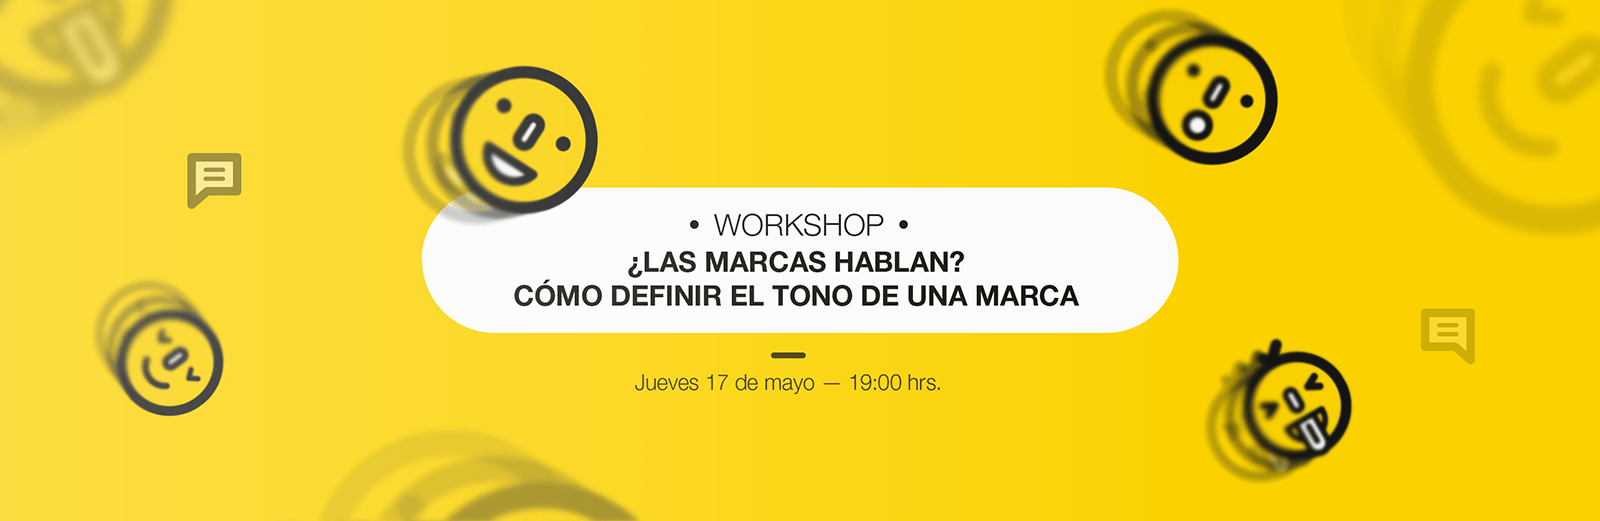 Workshop-todo-de-una-marca-web-cabecera-4